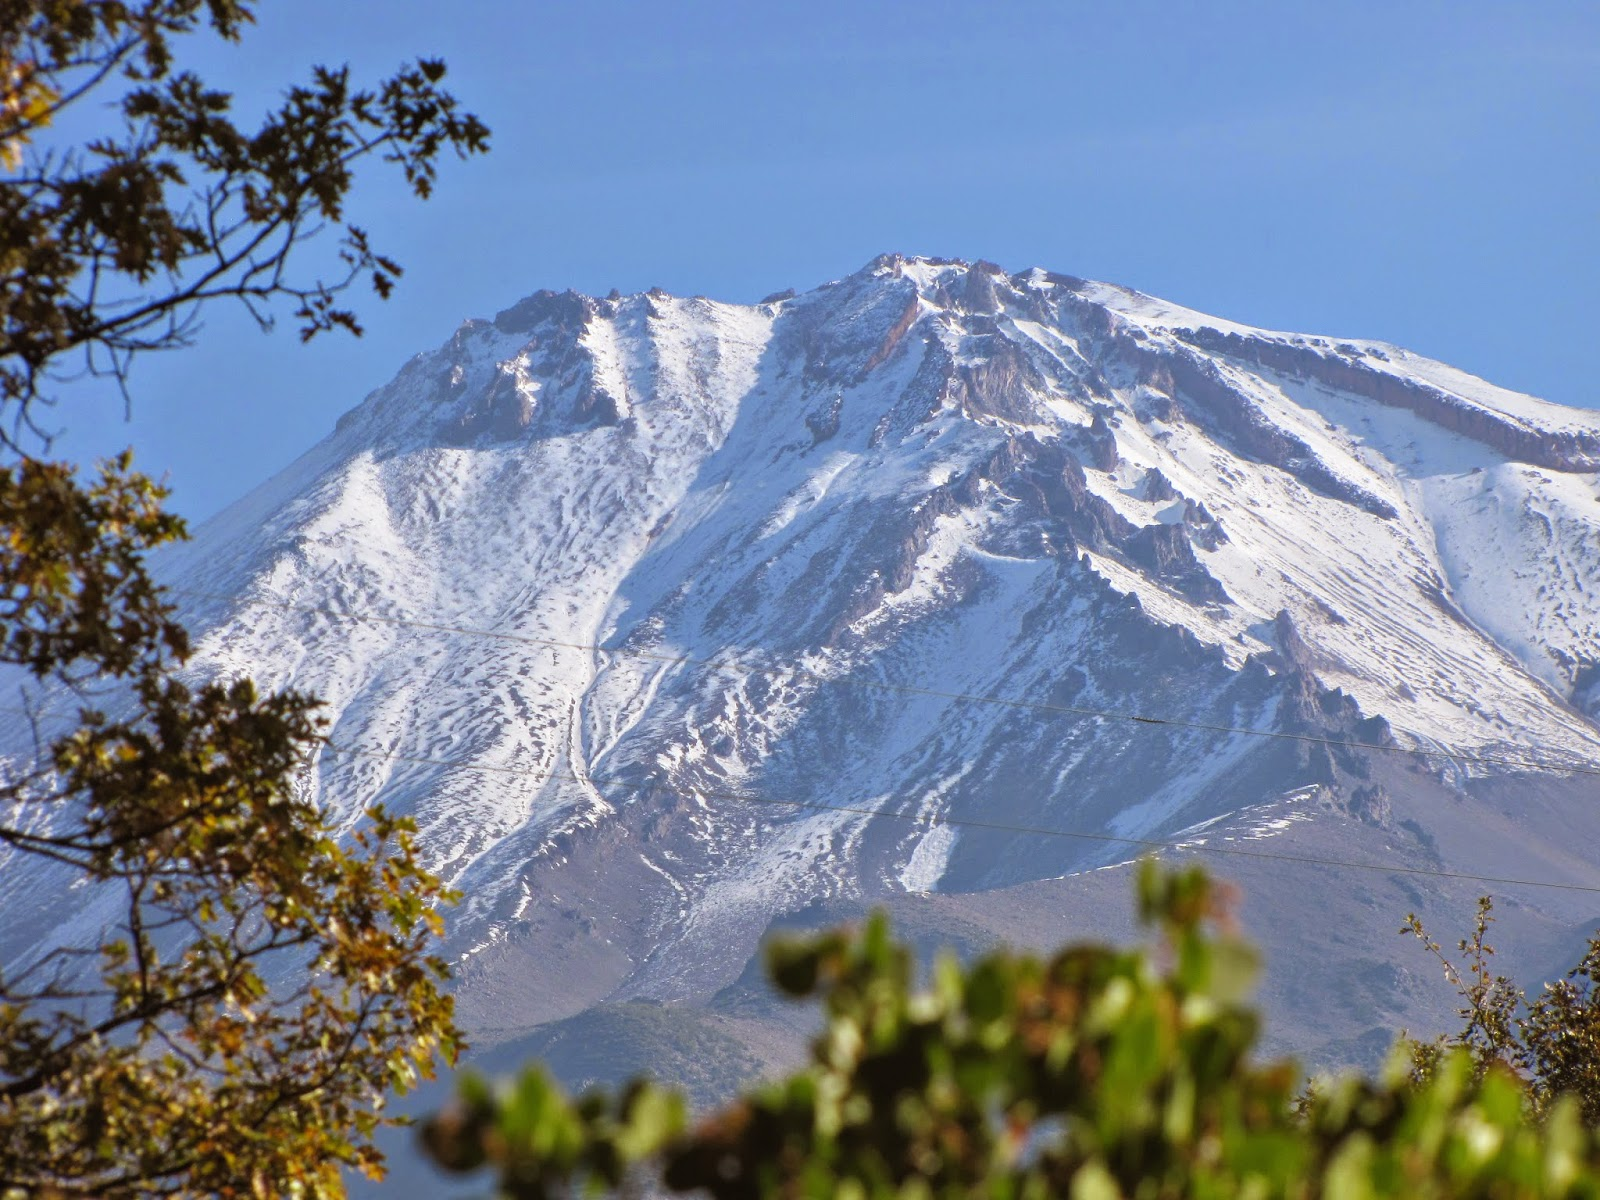 Mount Shasta: bring clarity to your journey